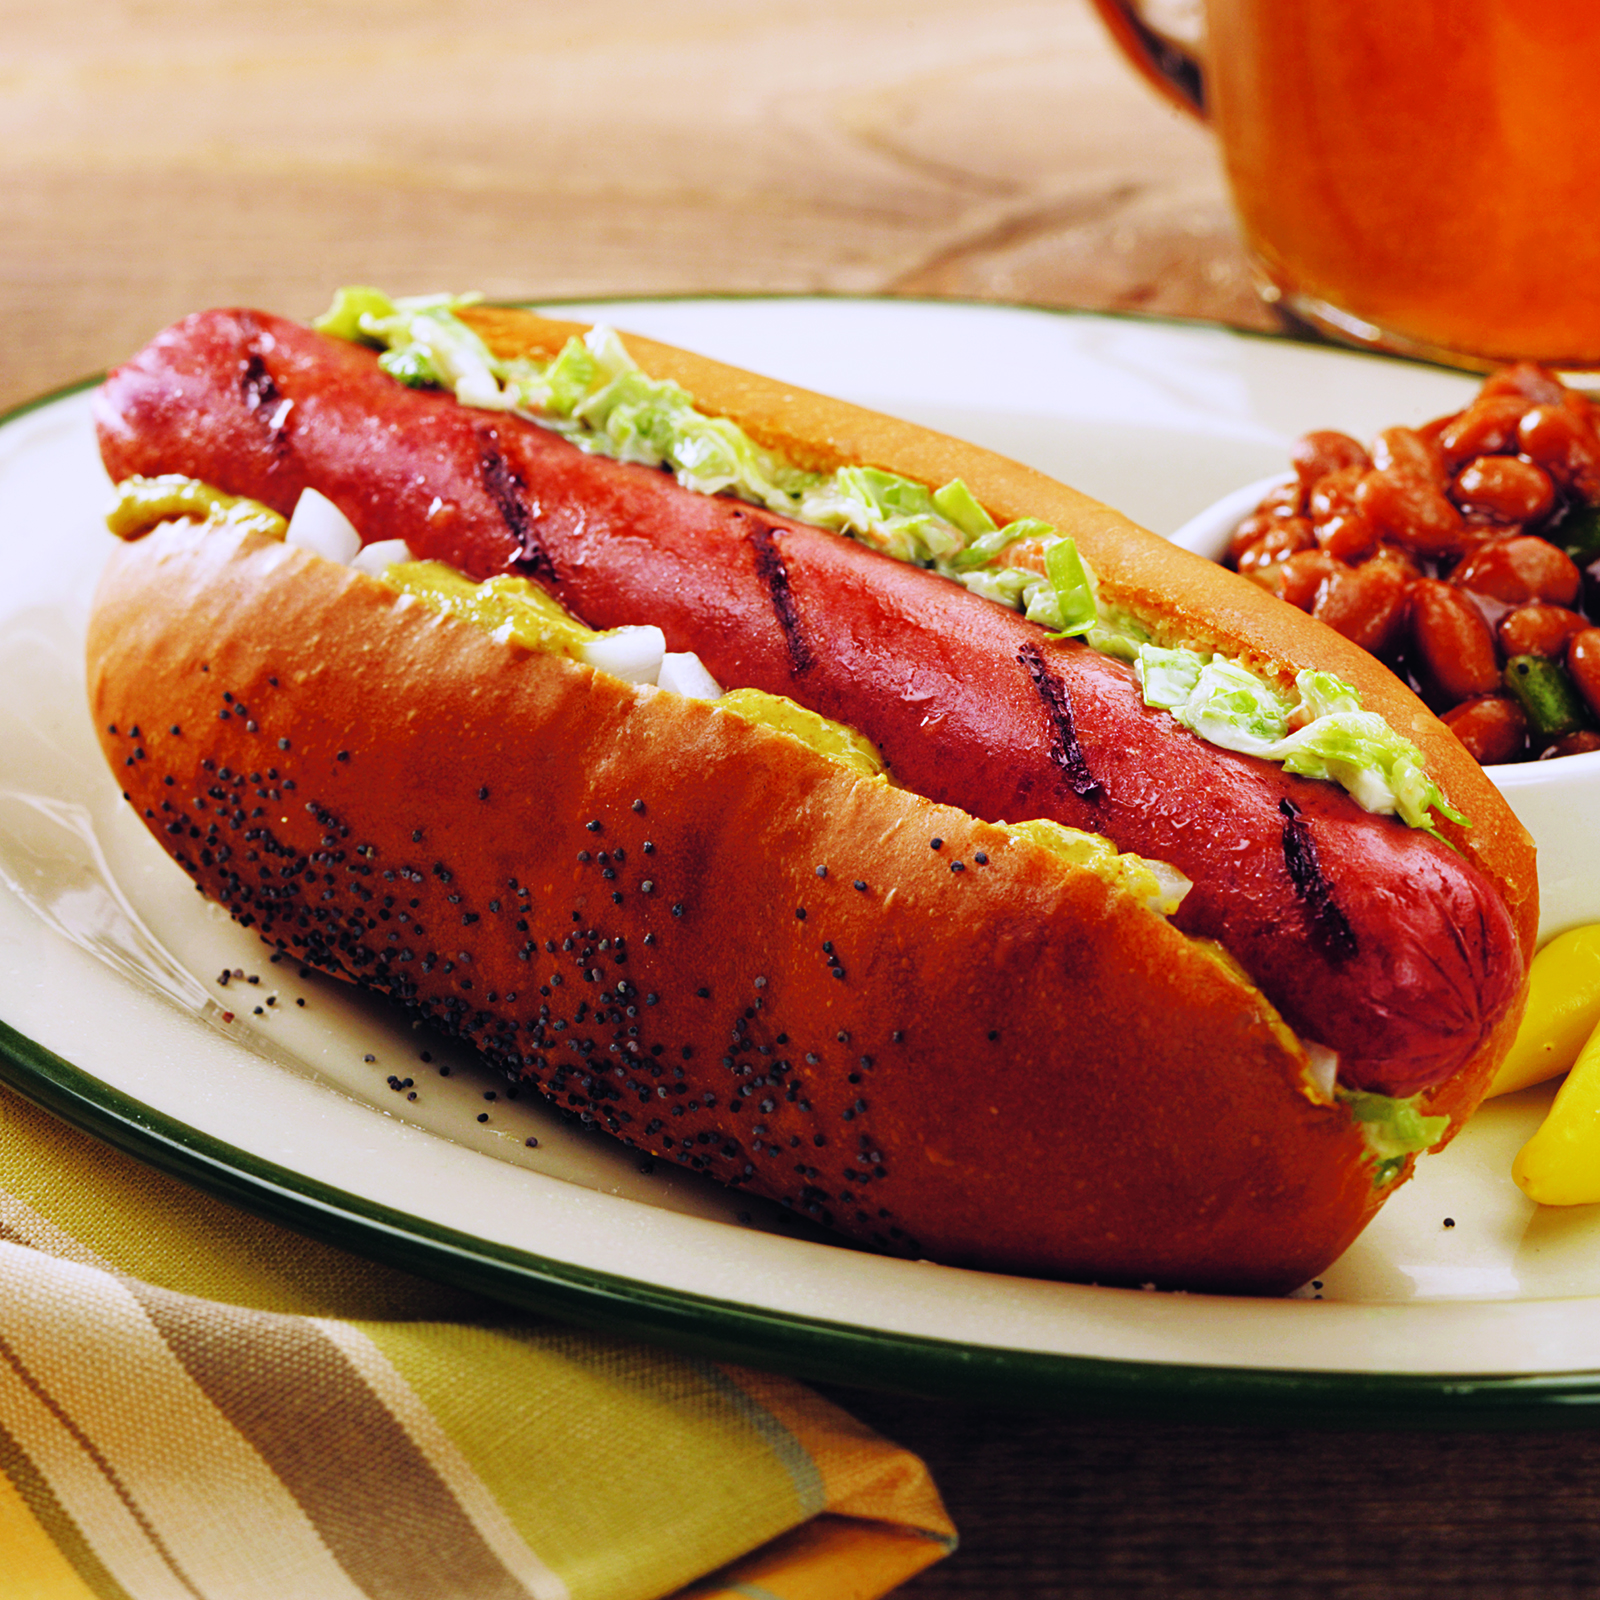 9 Hot Dog Recipes That Bring the Ballpark to Your Home